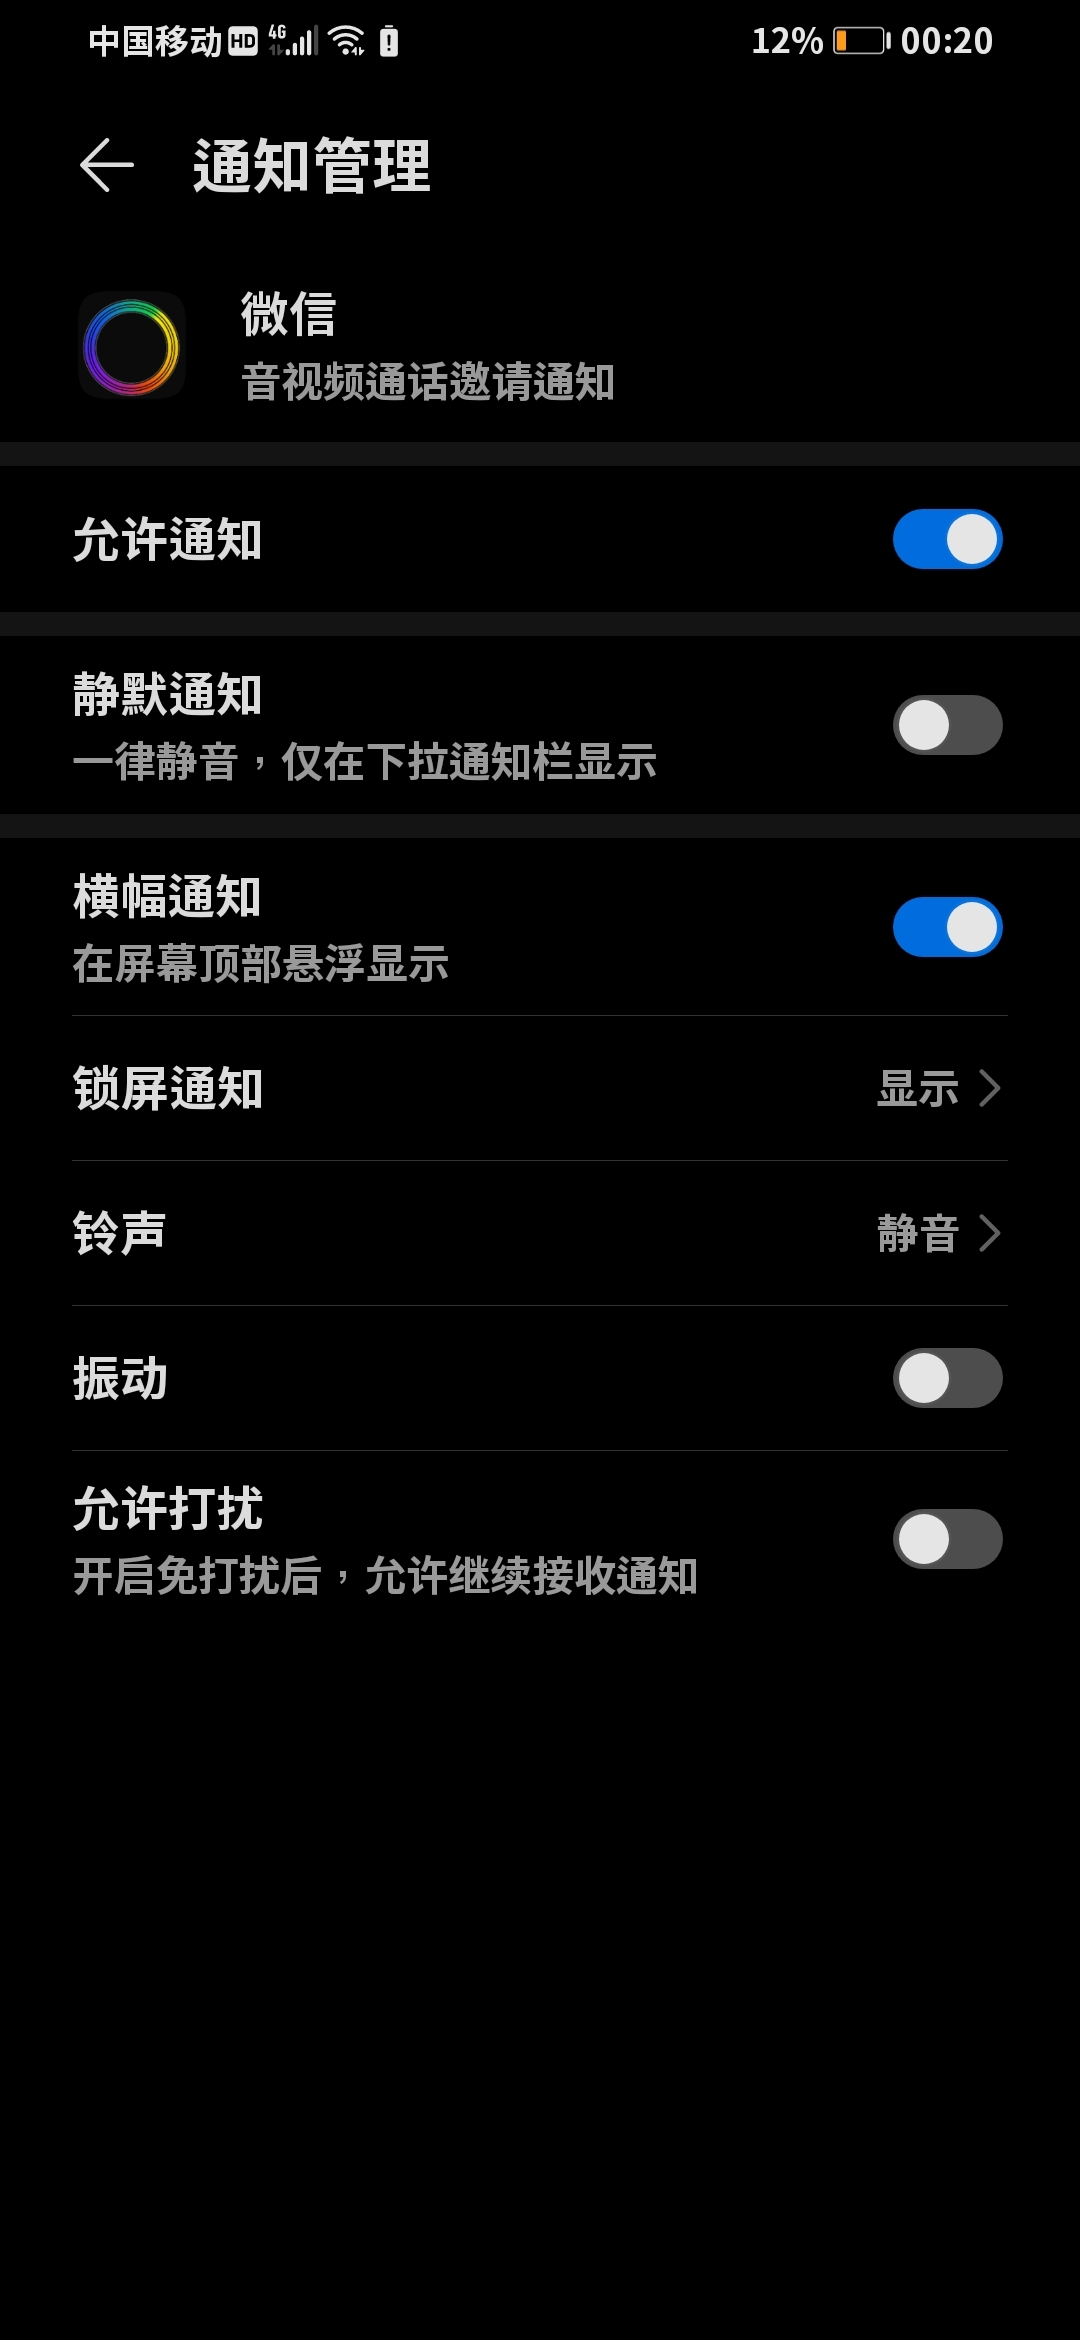 Screenshot_20200523_002057_com.huawei.systemmanager.jpg